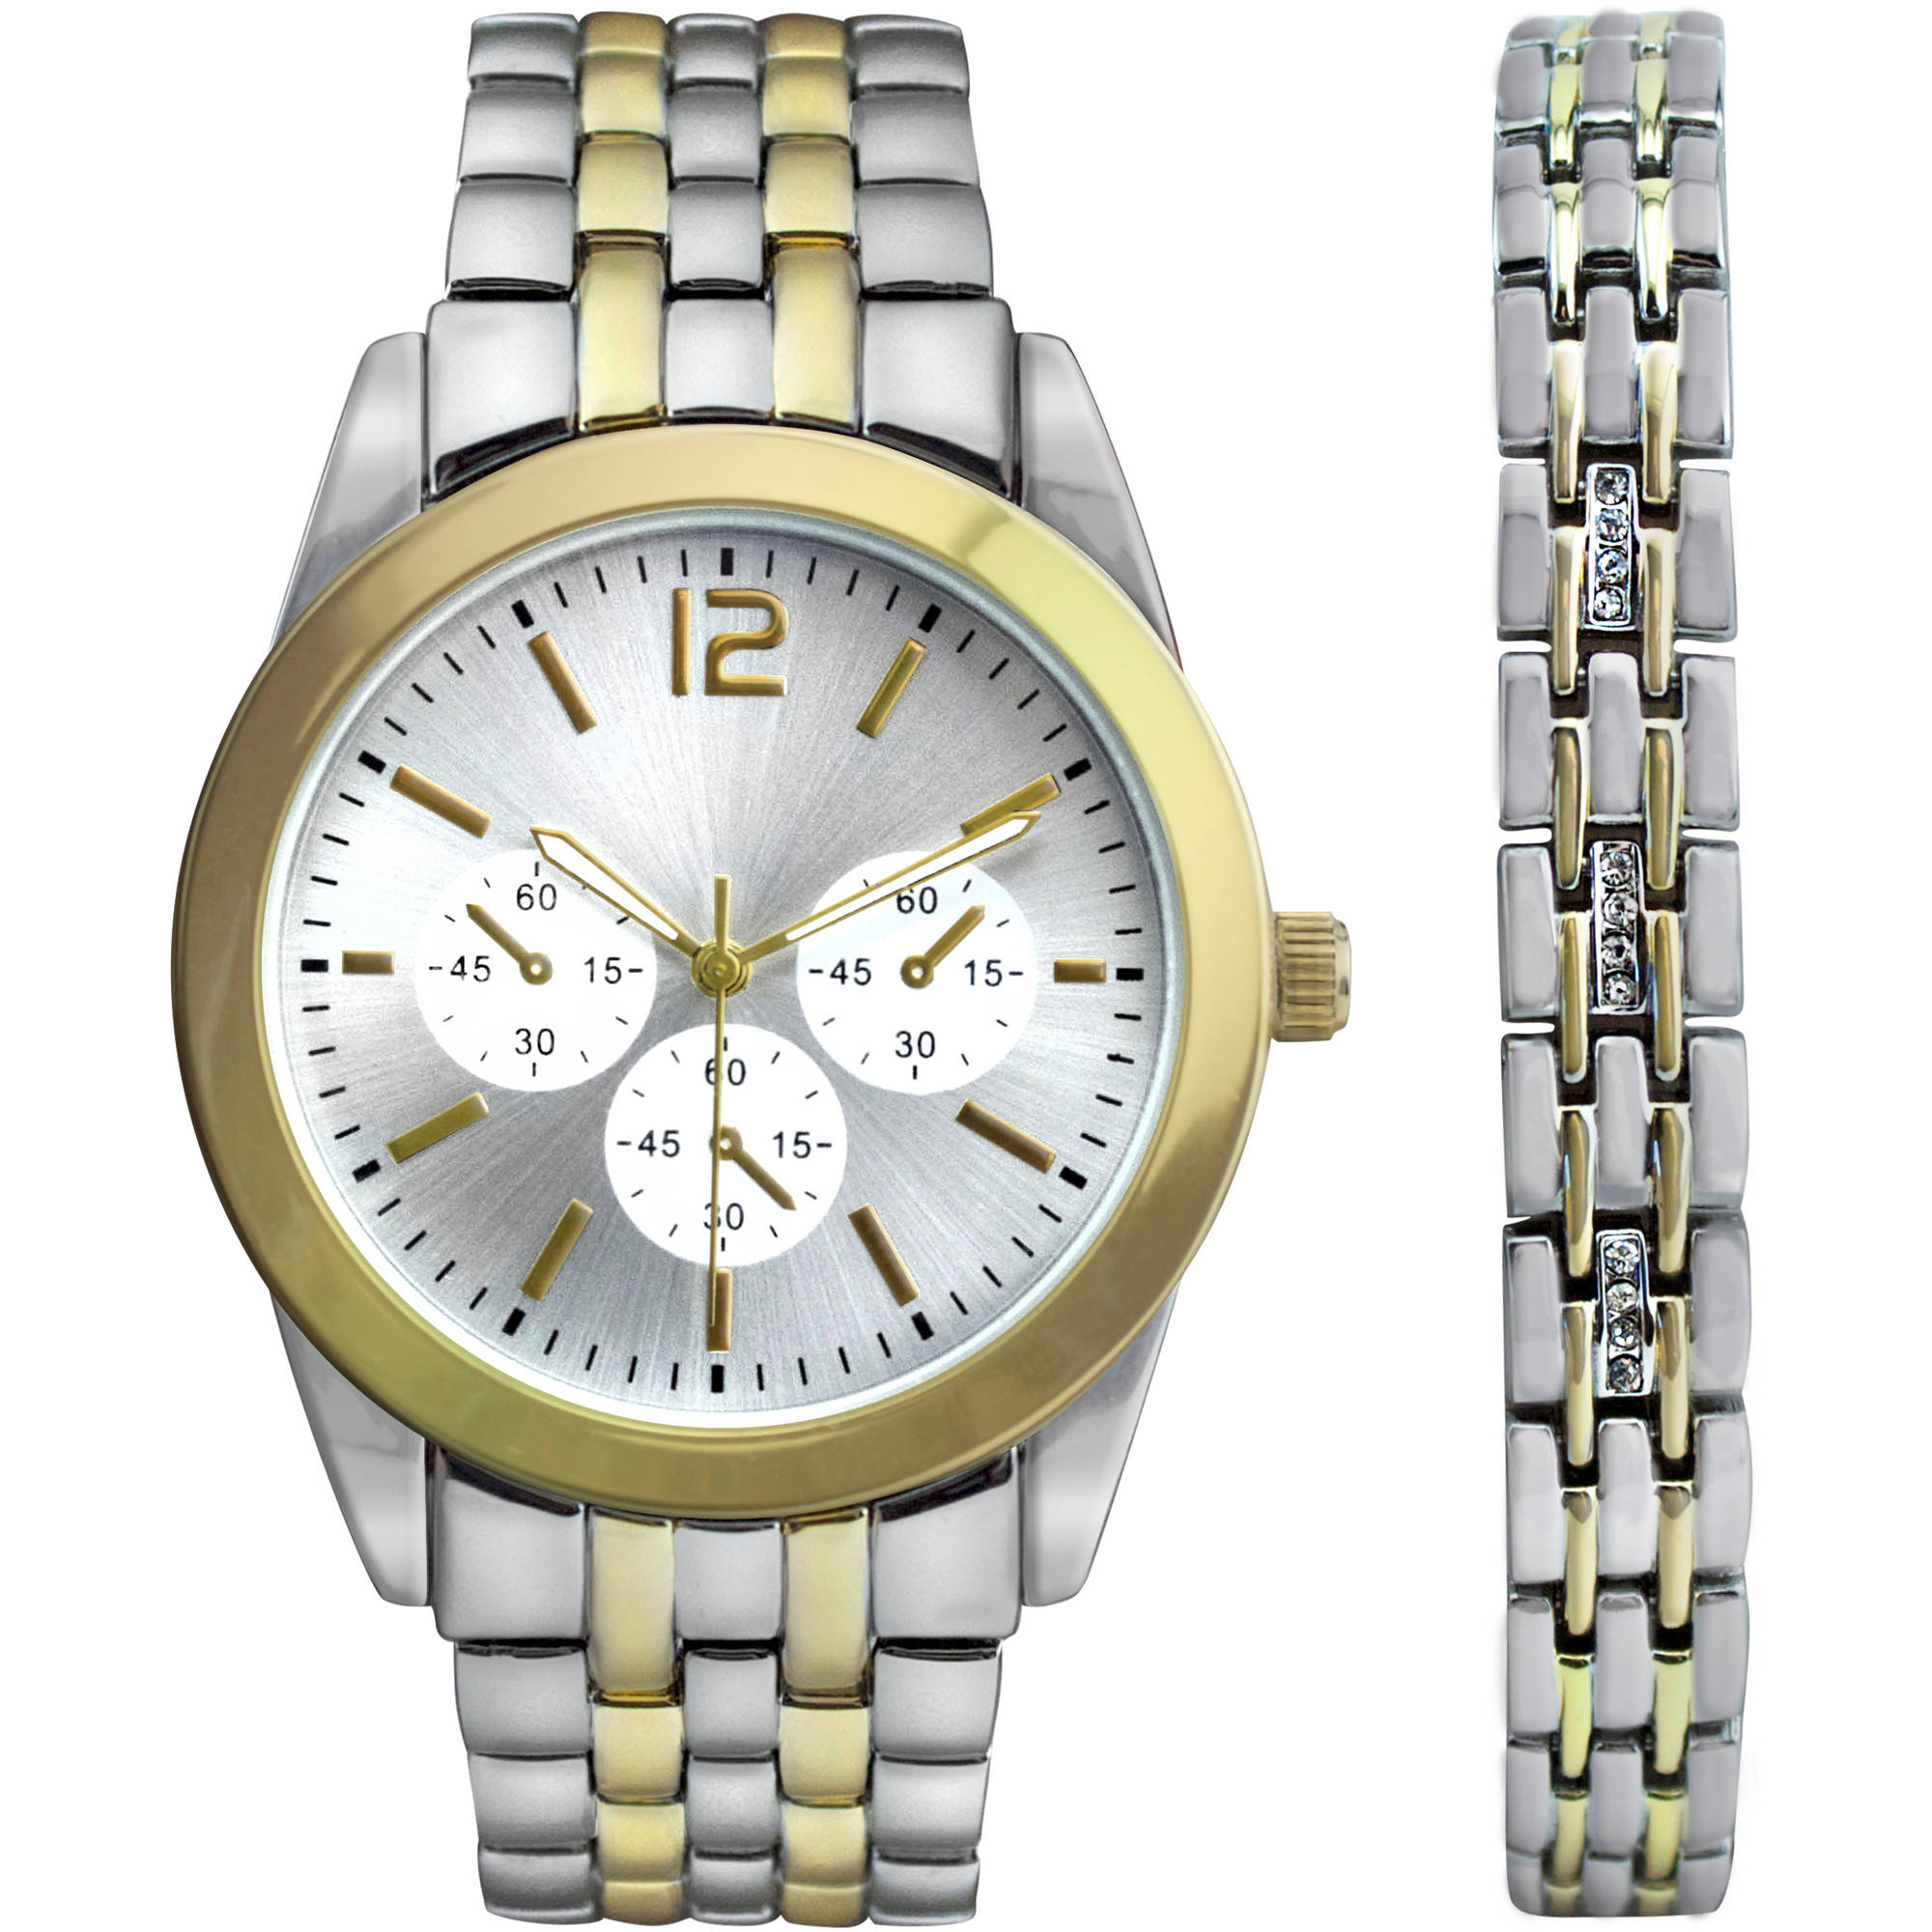 Men's Two-Tone Watch Gift Set with Matching Bracelet